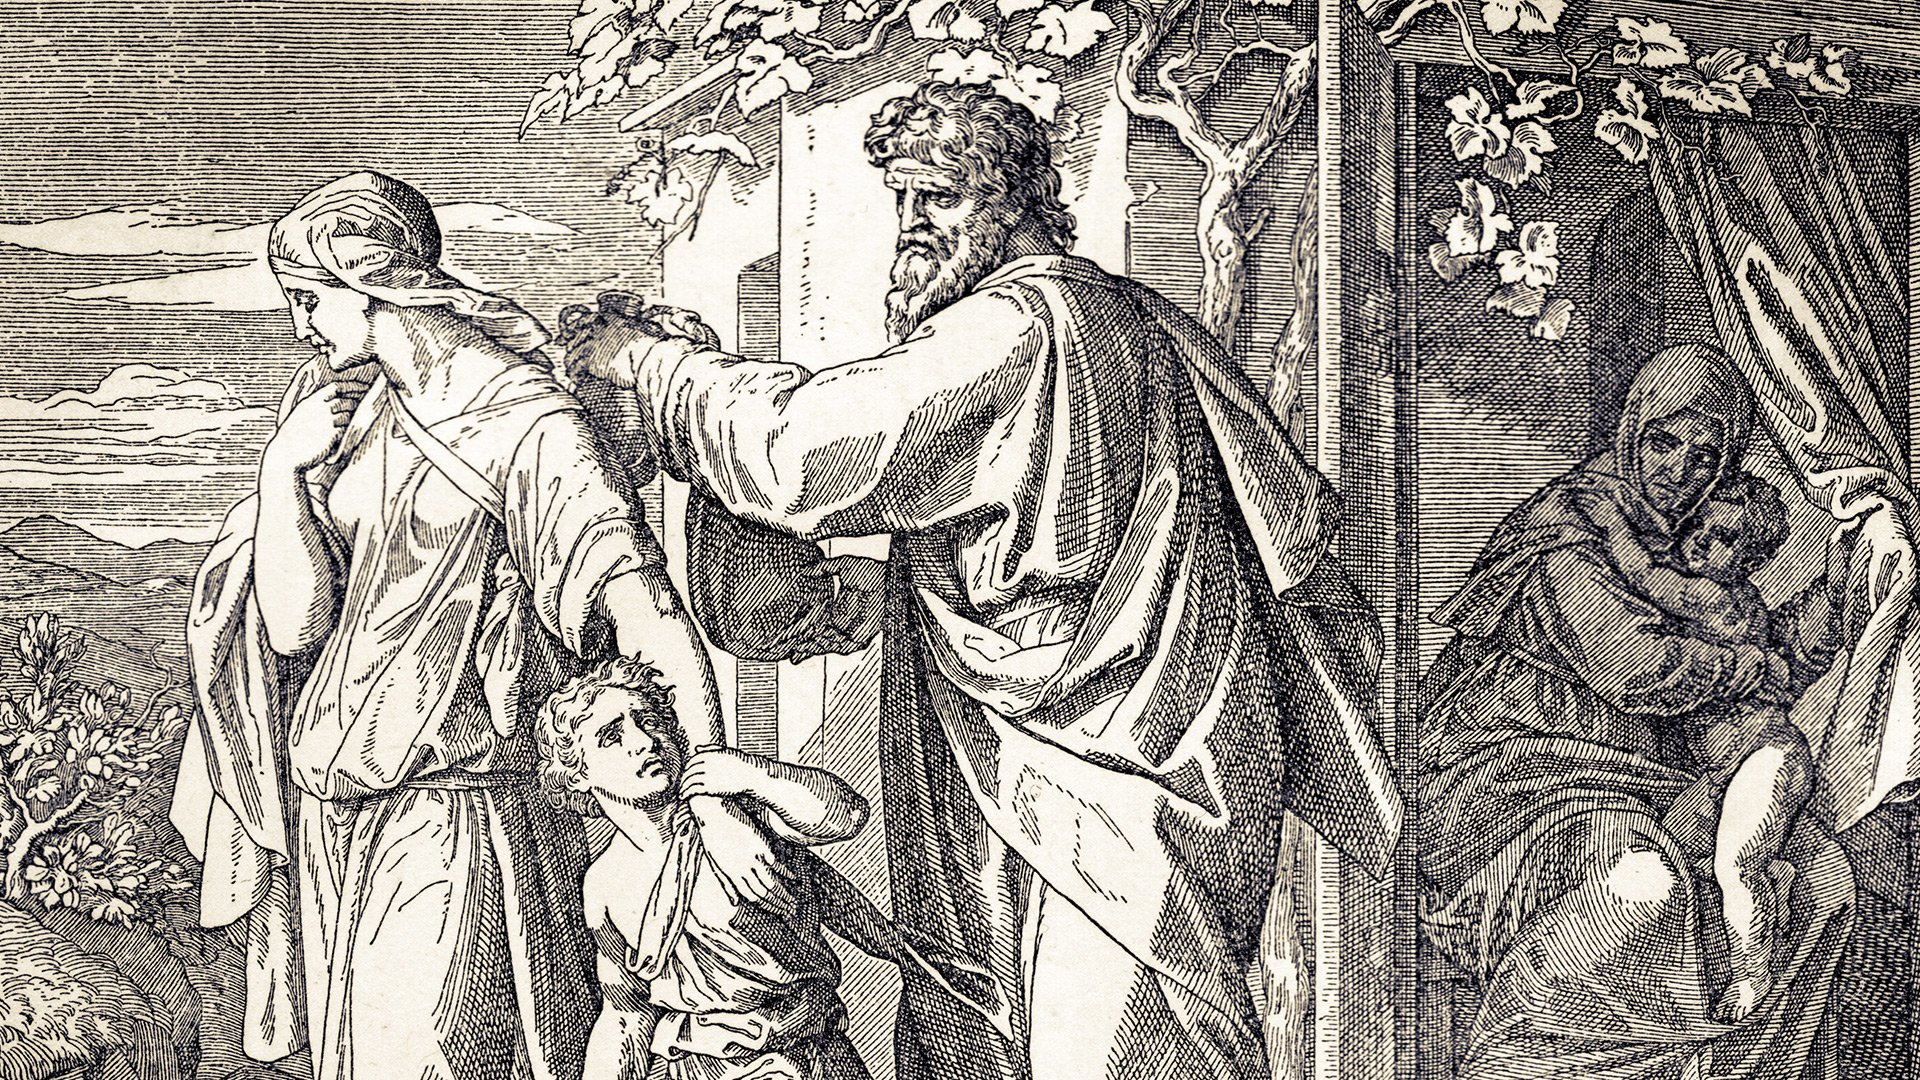 Artists depiction of Hagar and Ishmael being sent away.